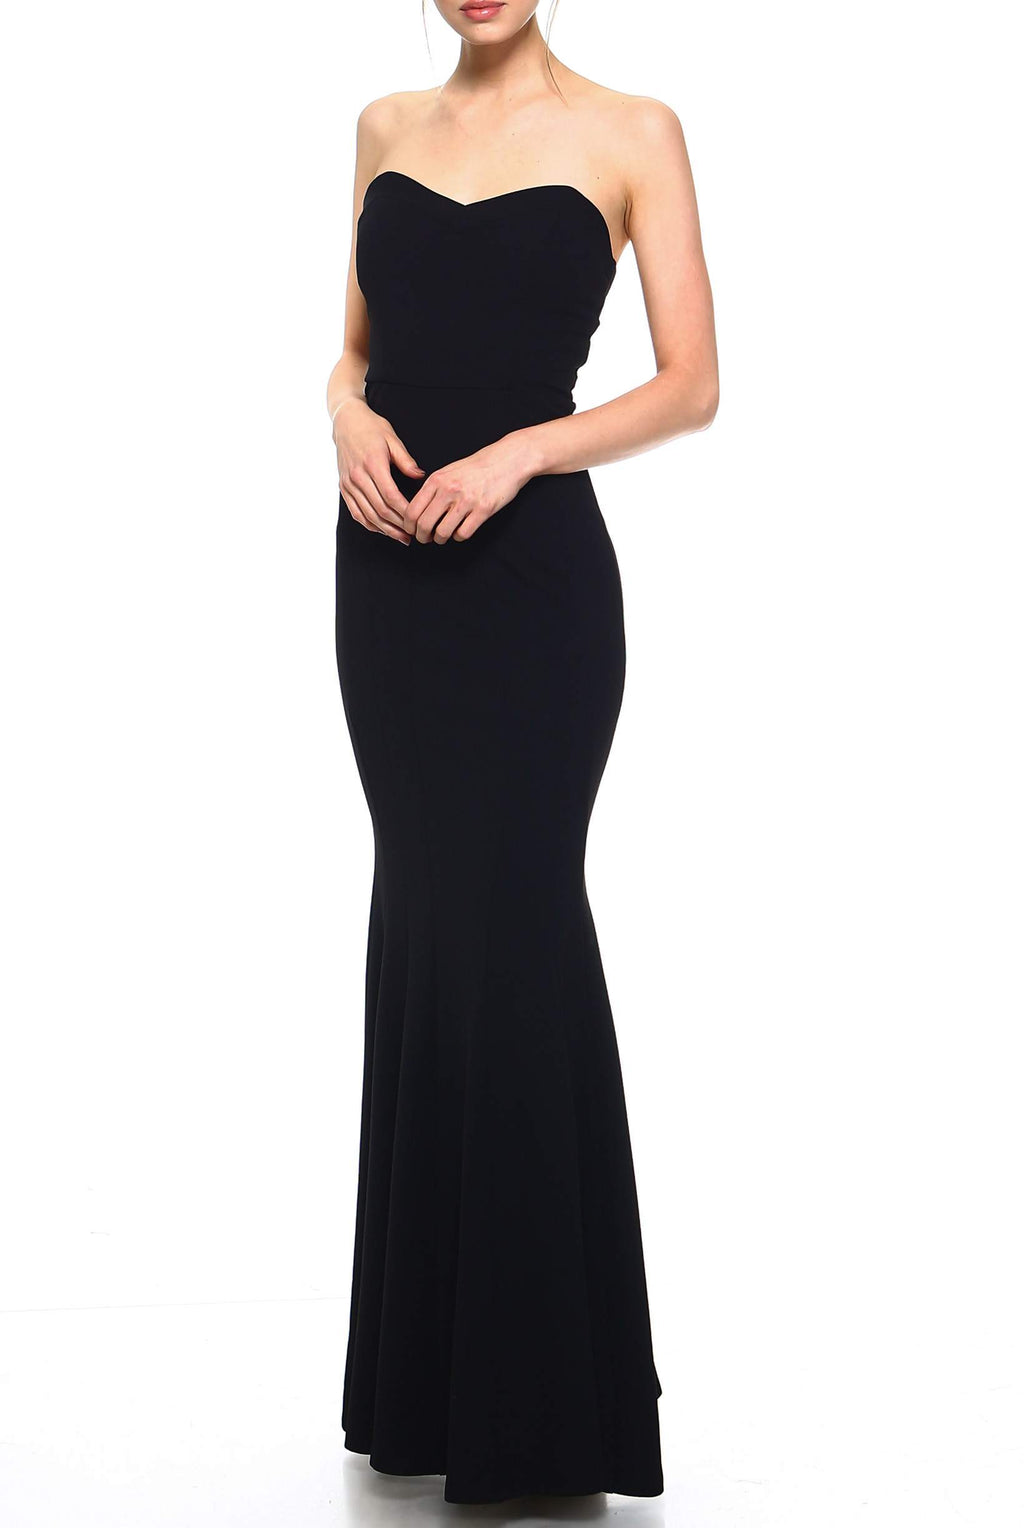 7318a7eb6 Teeze Me | Strapless Tube Top Trumpet Skirt Long Dress | Black | Teeze Me  Juniors